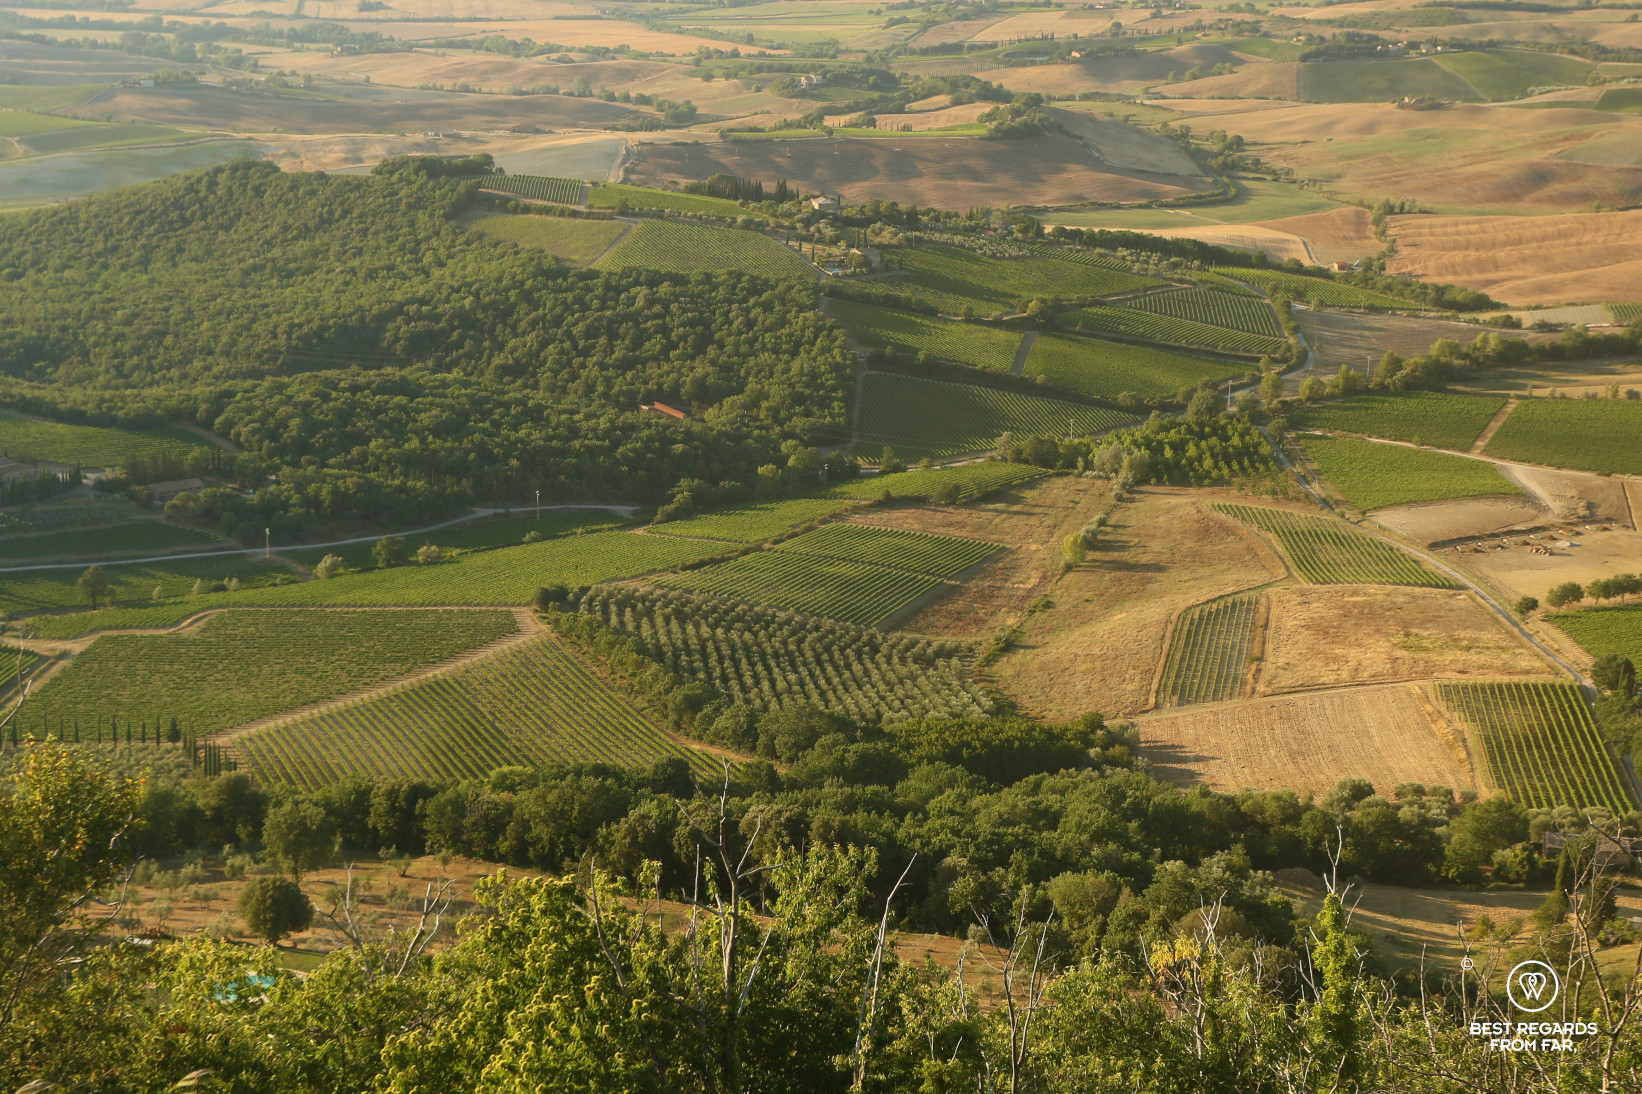 Typical Tuscan landscapes with vineyards in Italy